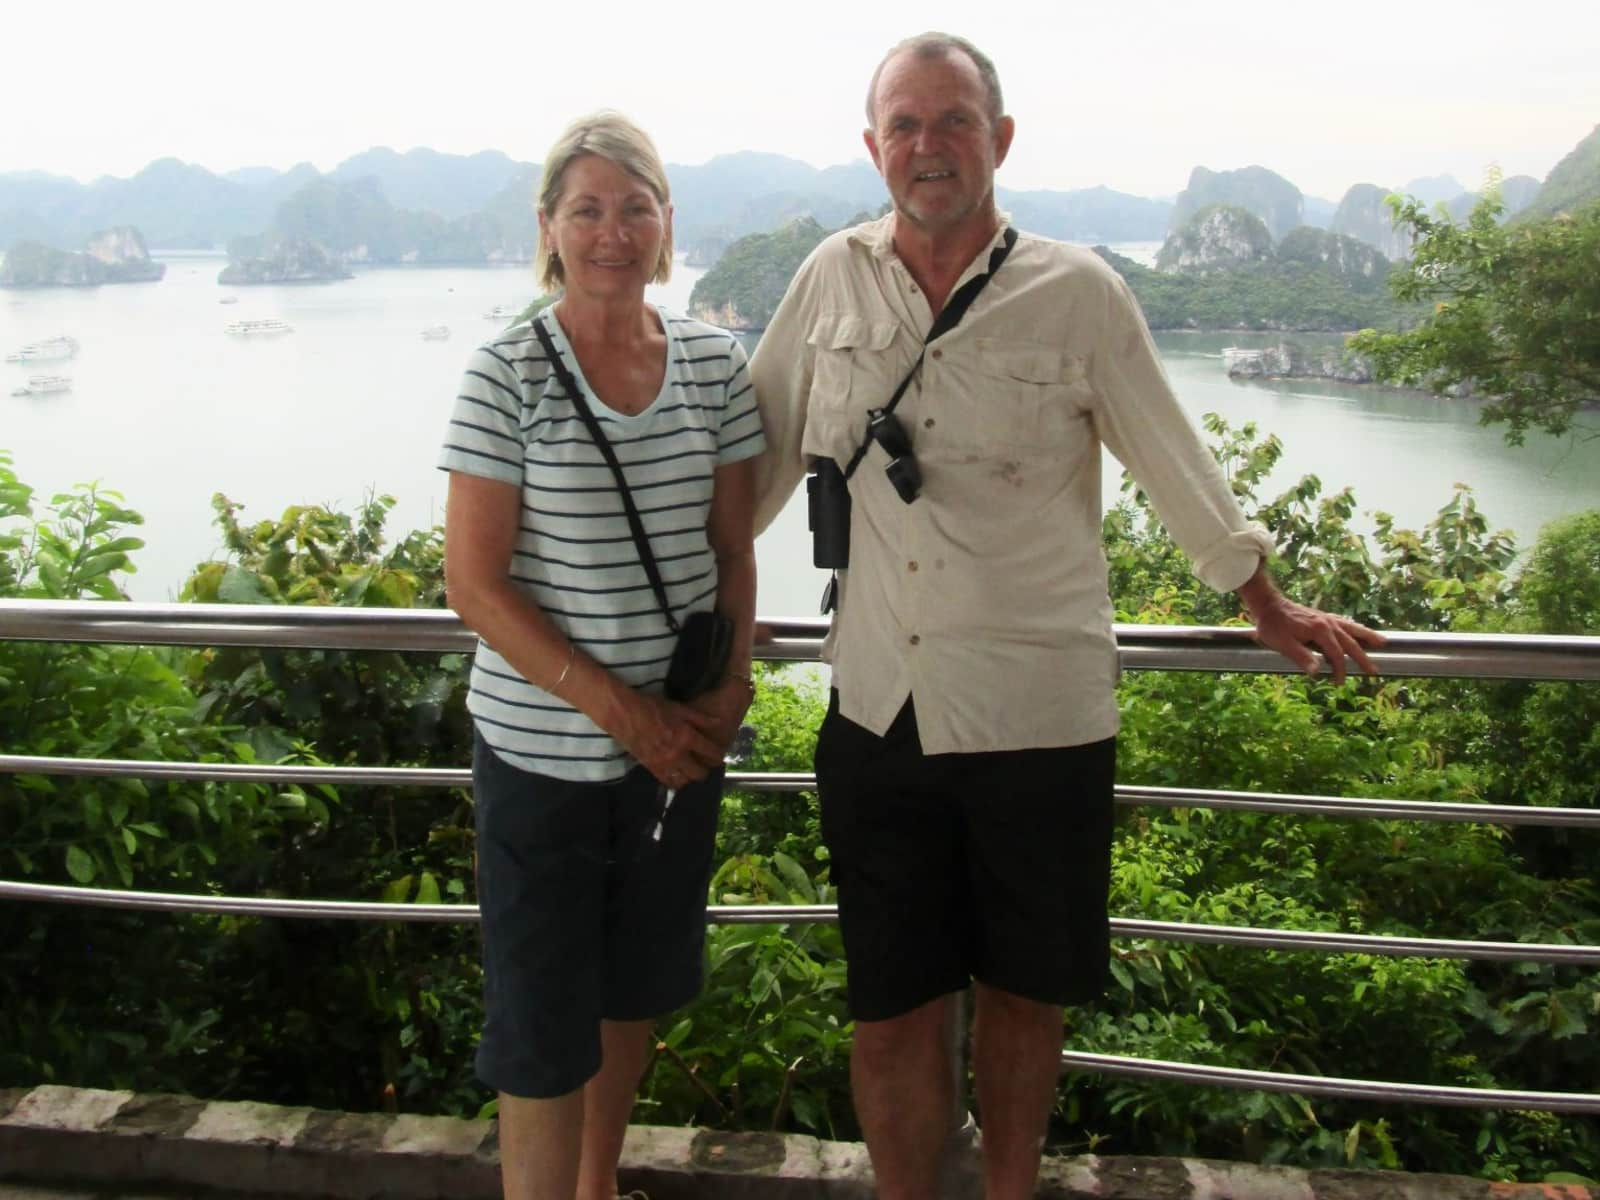 Bob & Lyn from Alstonville, New South Wales, Australia